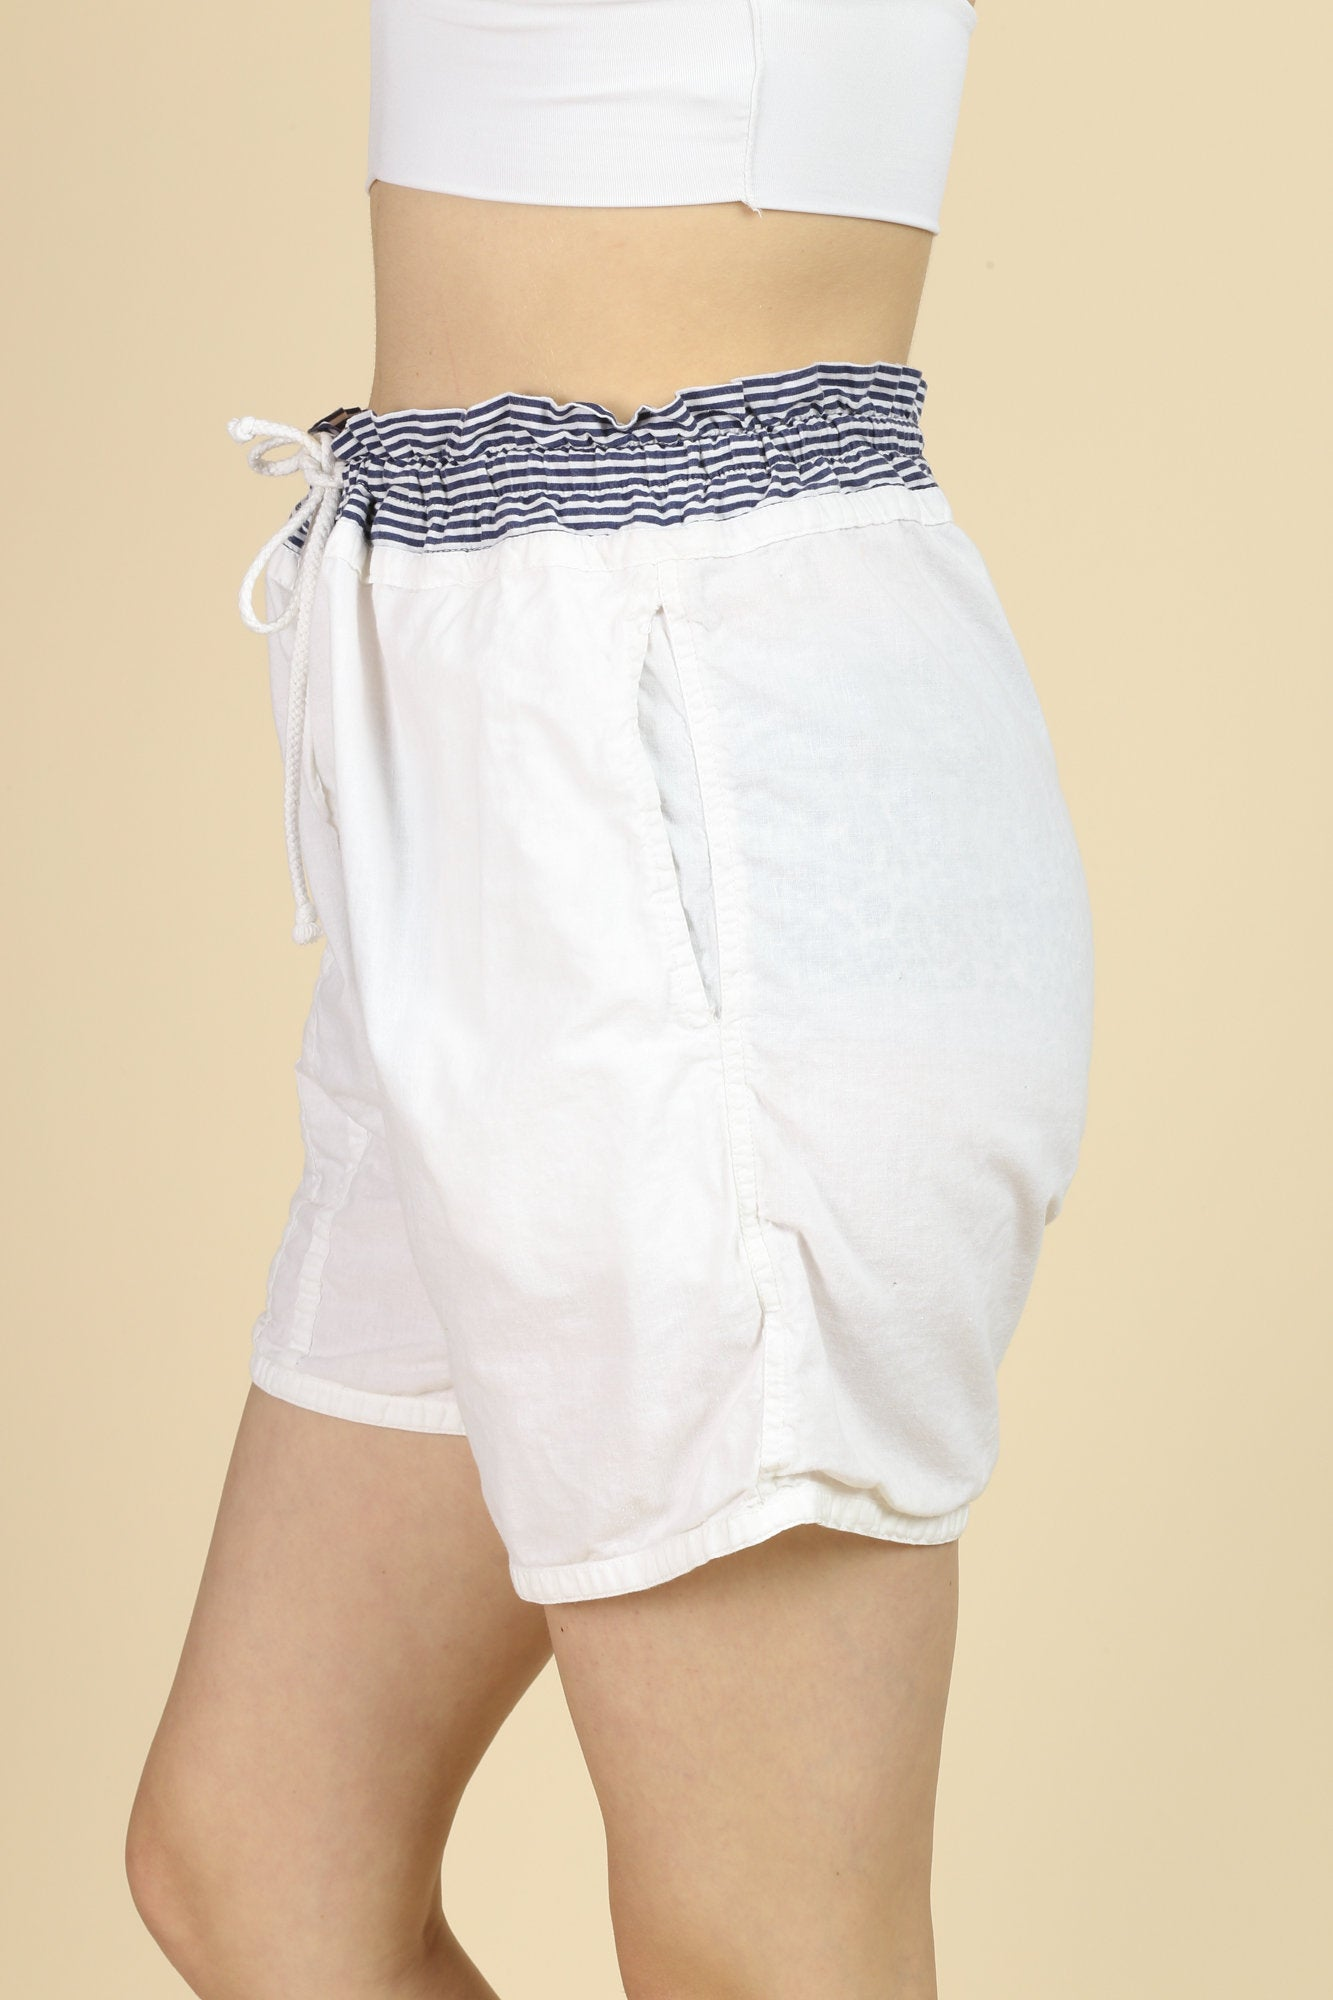 80s Energie Bi Currant High Waisted Summer Shorts - Large